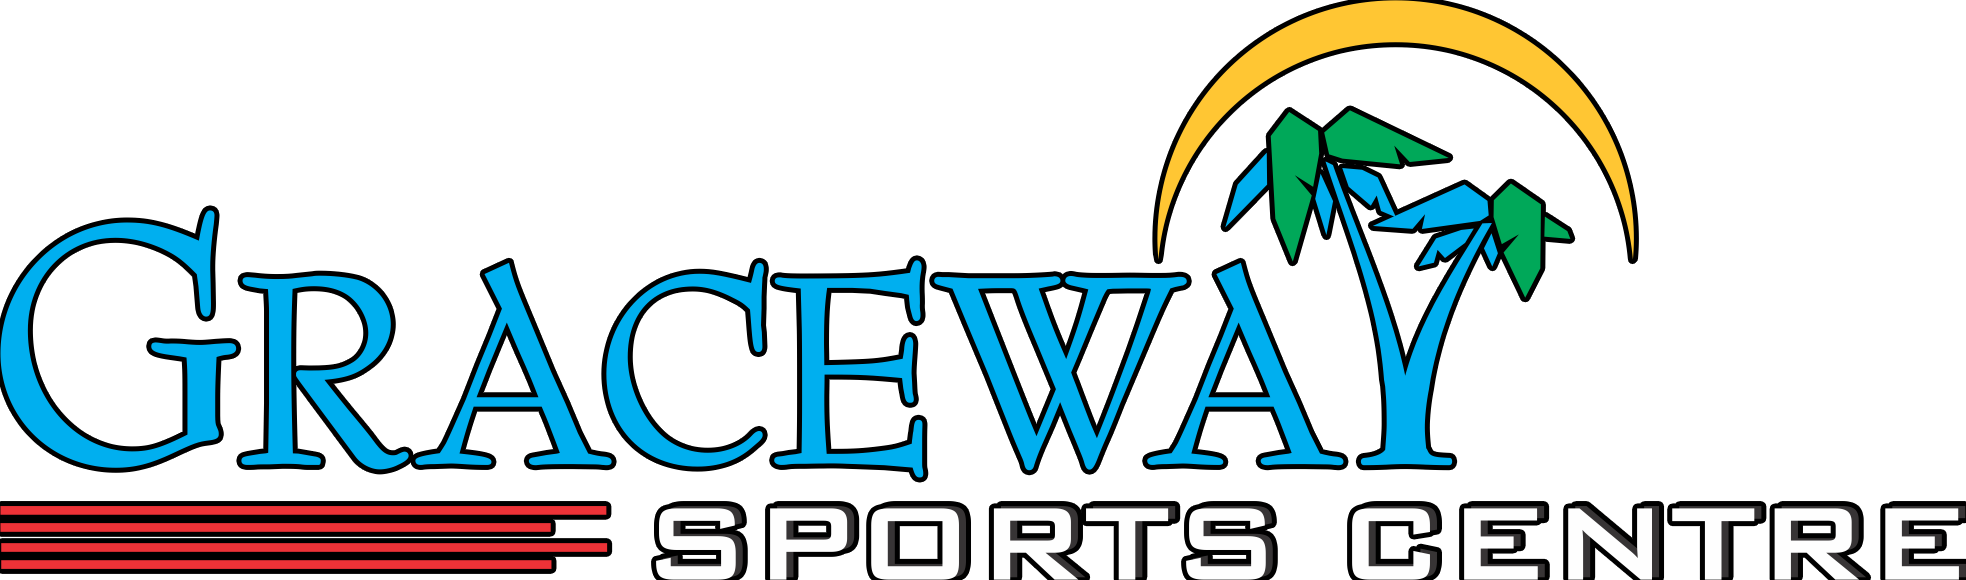 Meet the Team | Graceway Sports Center